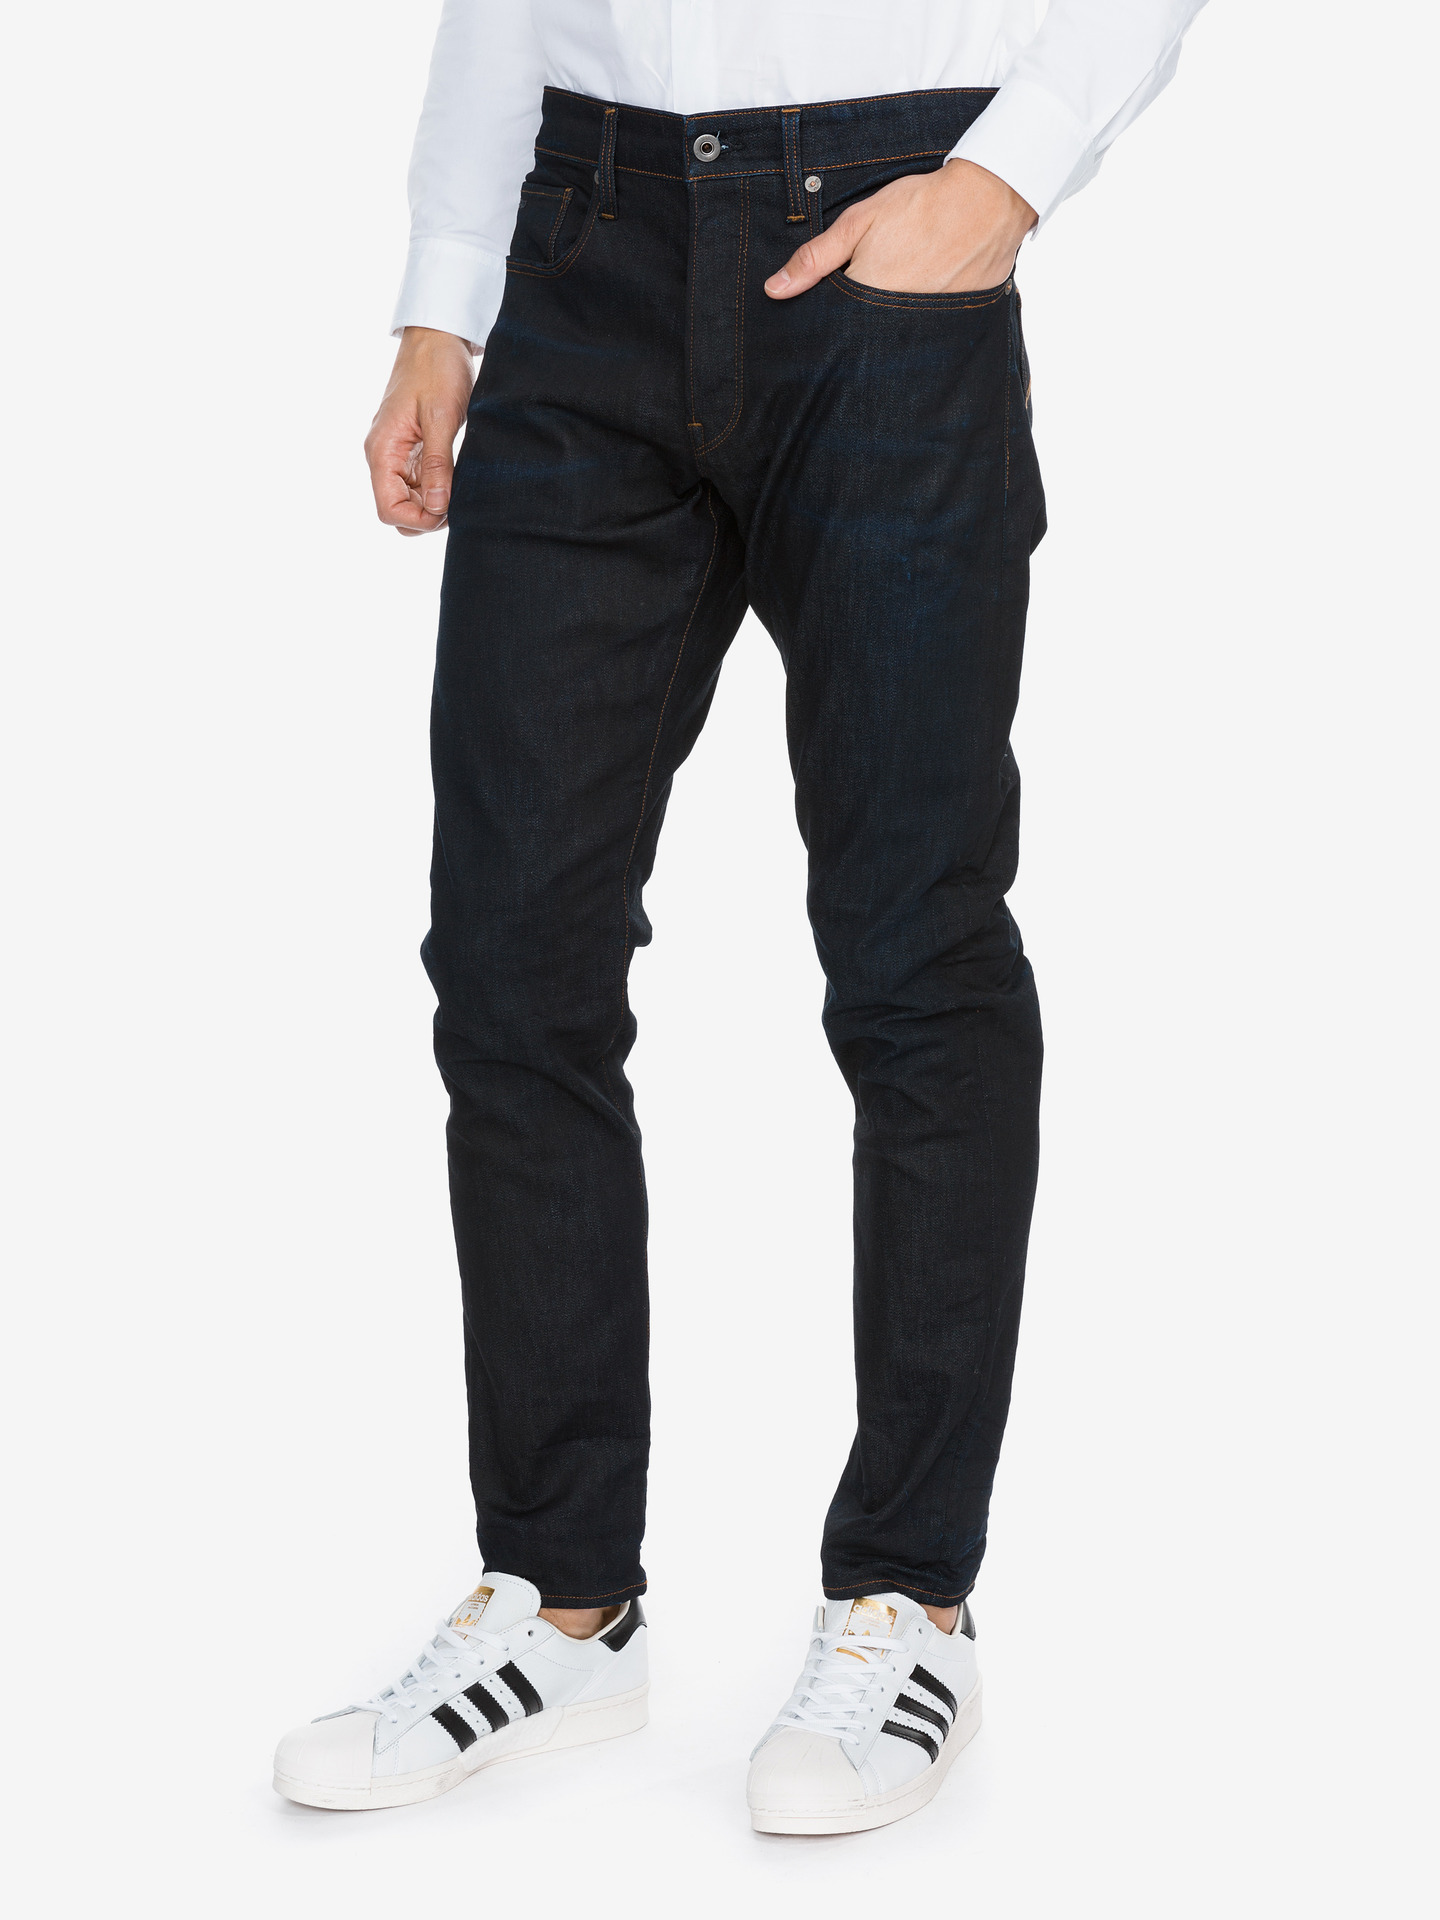 3301 Jeans G-Star RAW (1)